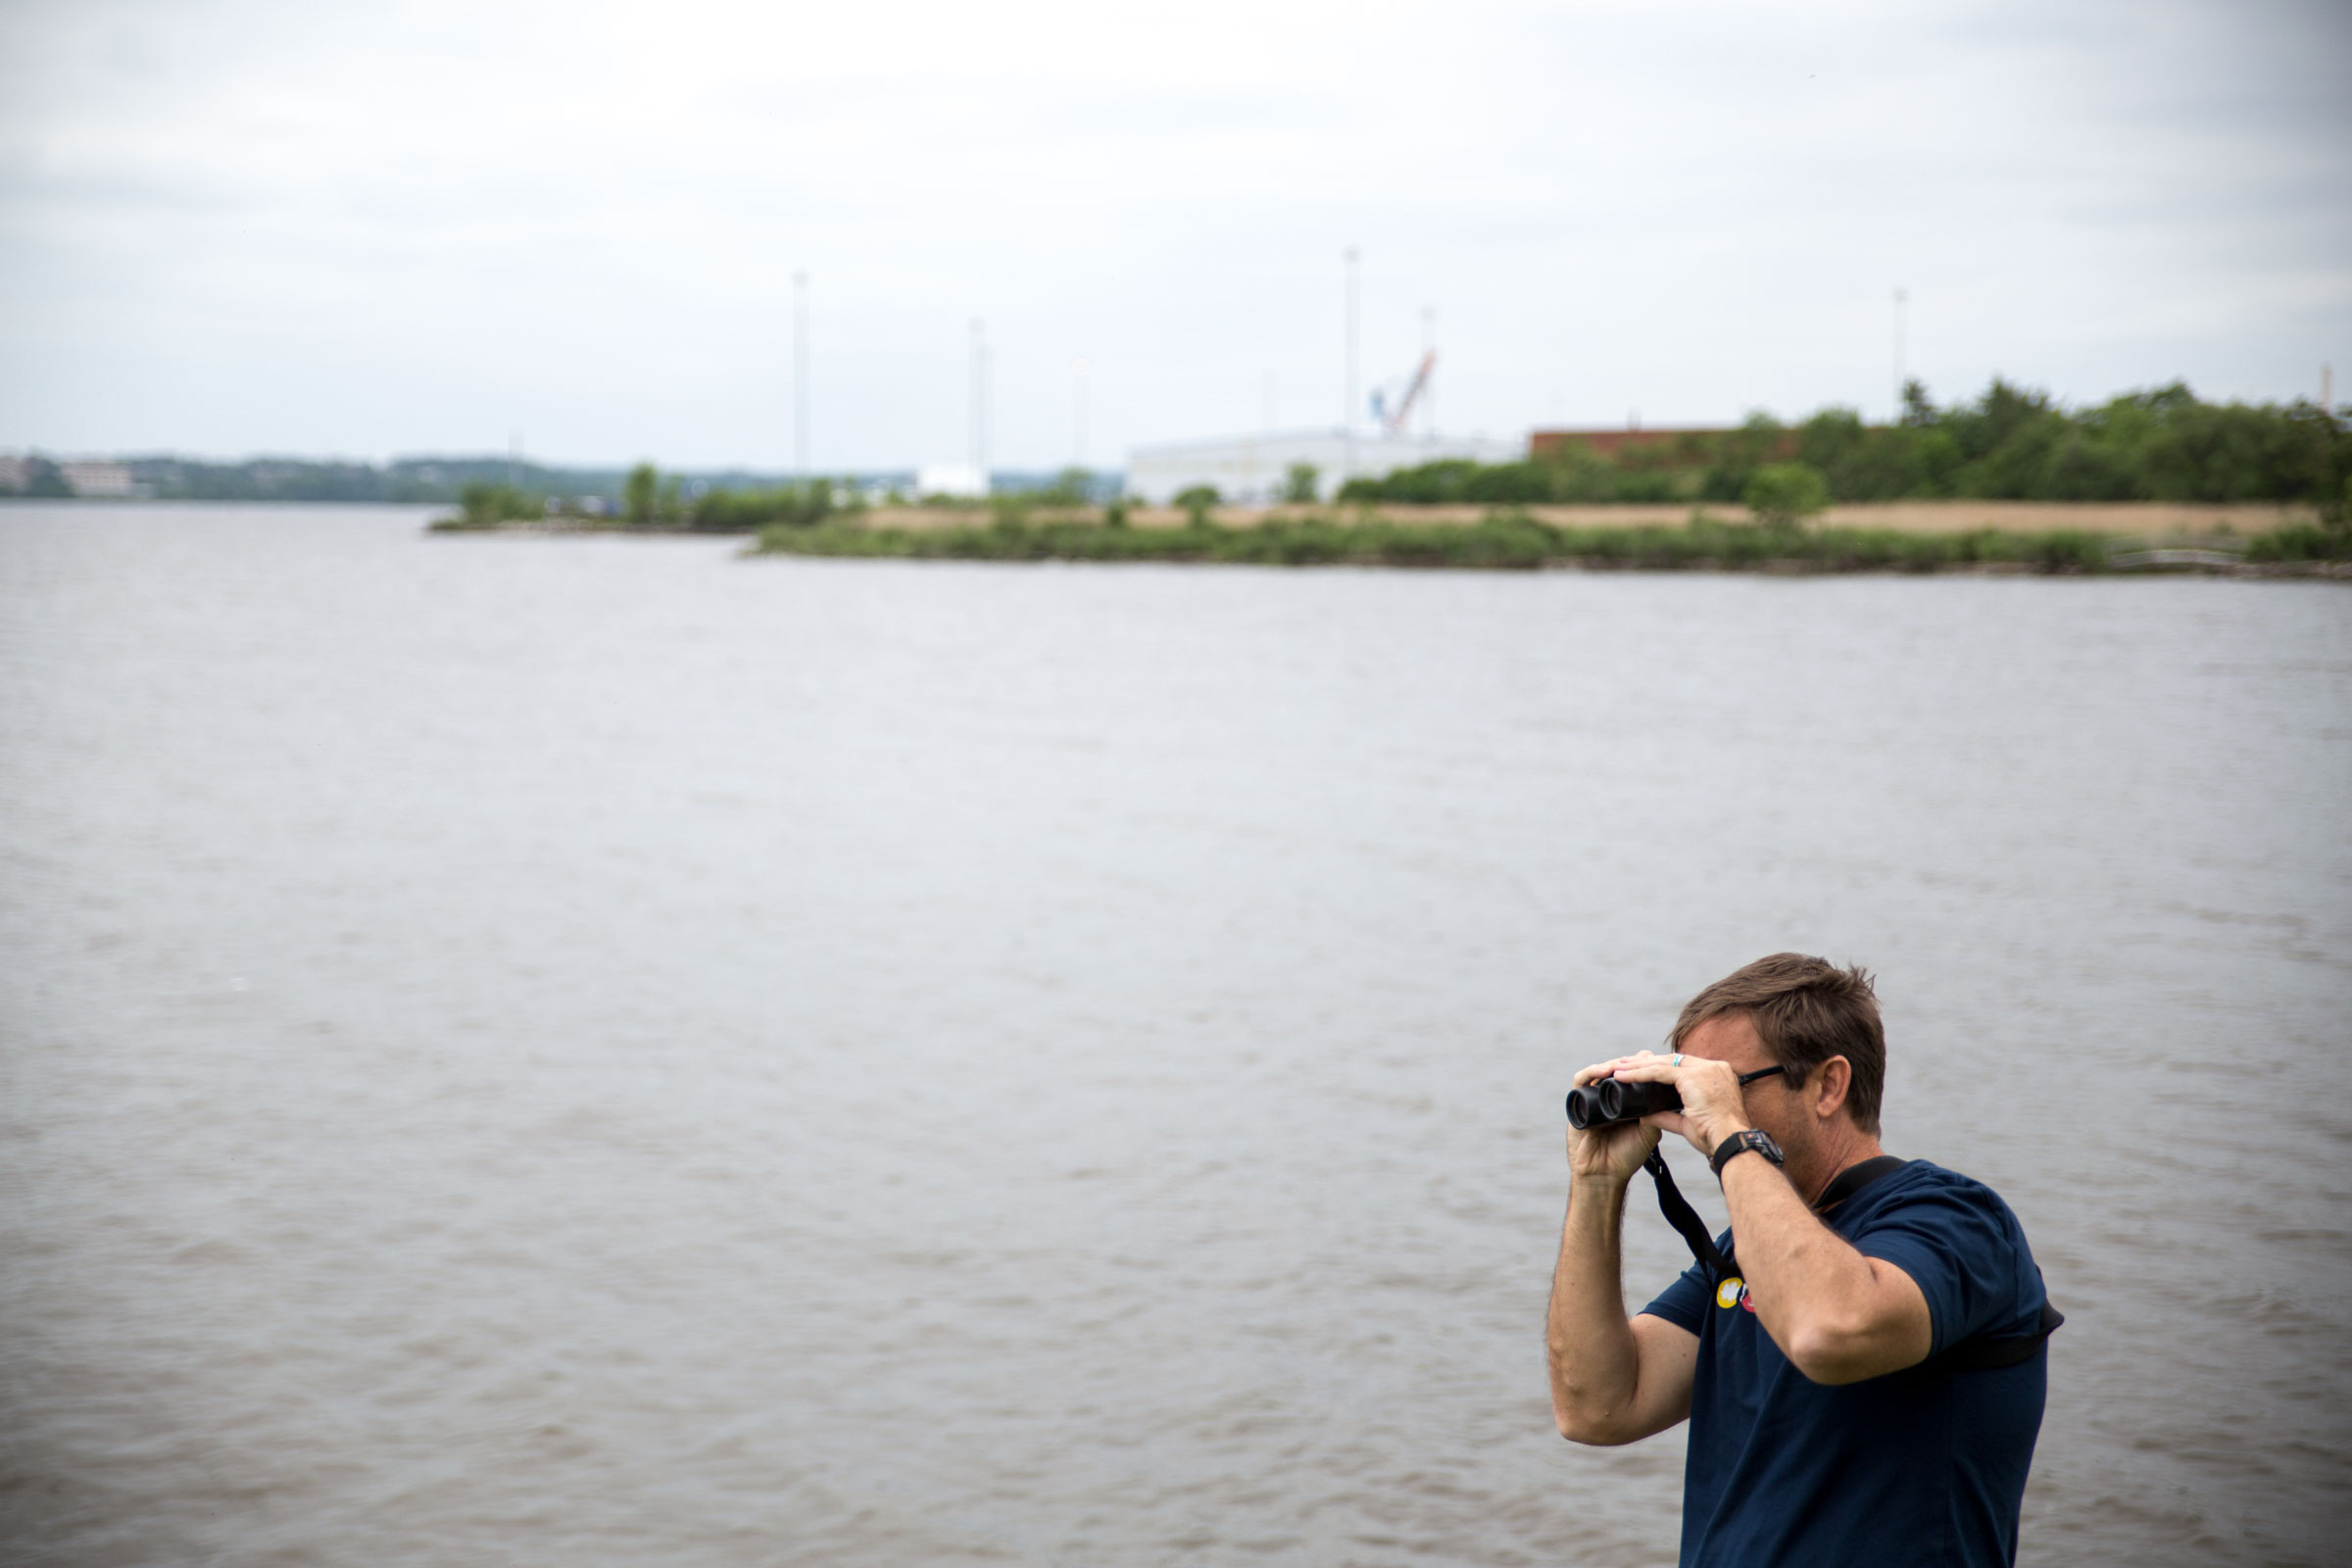 A festival goer scopes out a tiny Spotted Sandpiper along the harbor of Fort McHenry. More than 260 species have been recorded at the centuries-old monument and shrine. Camilla Cerea/Audubon